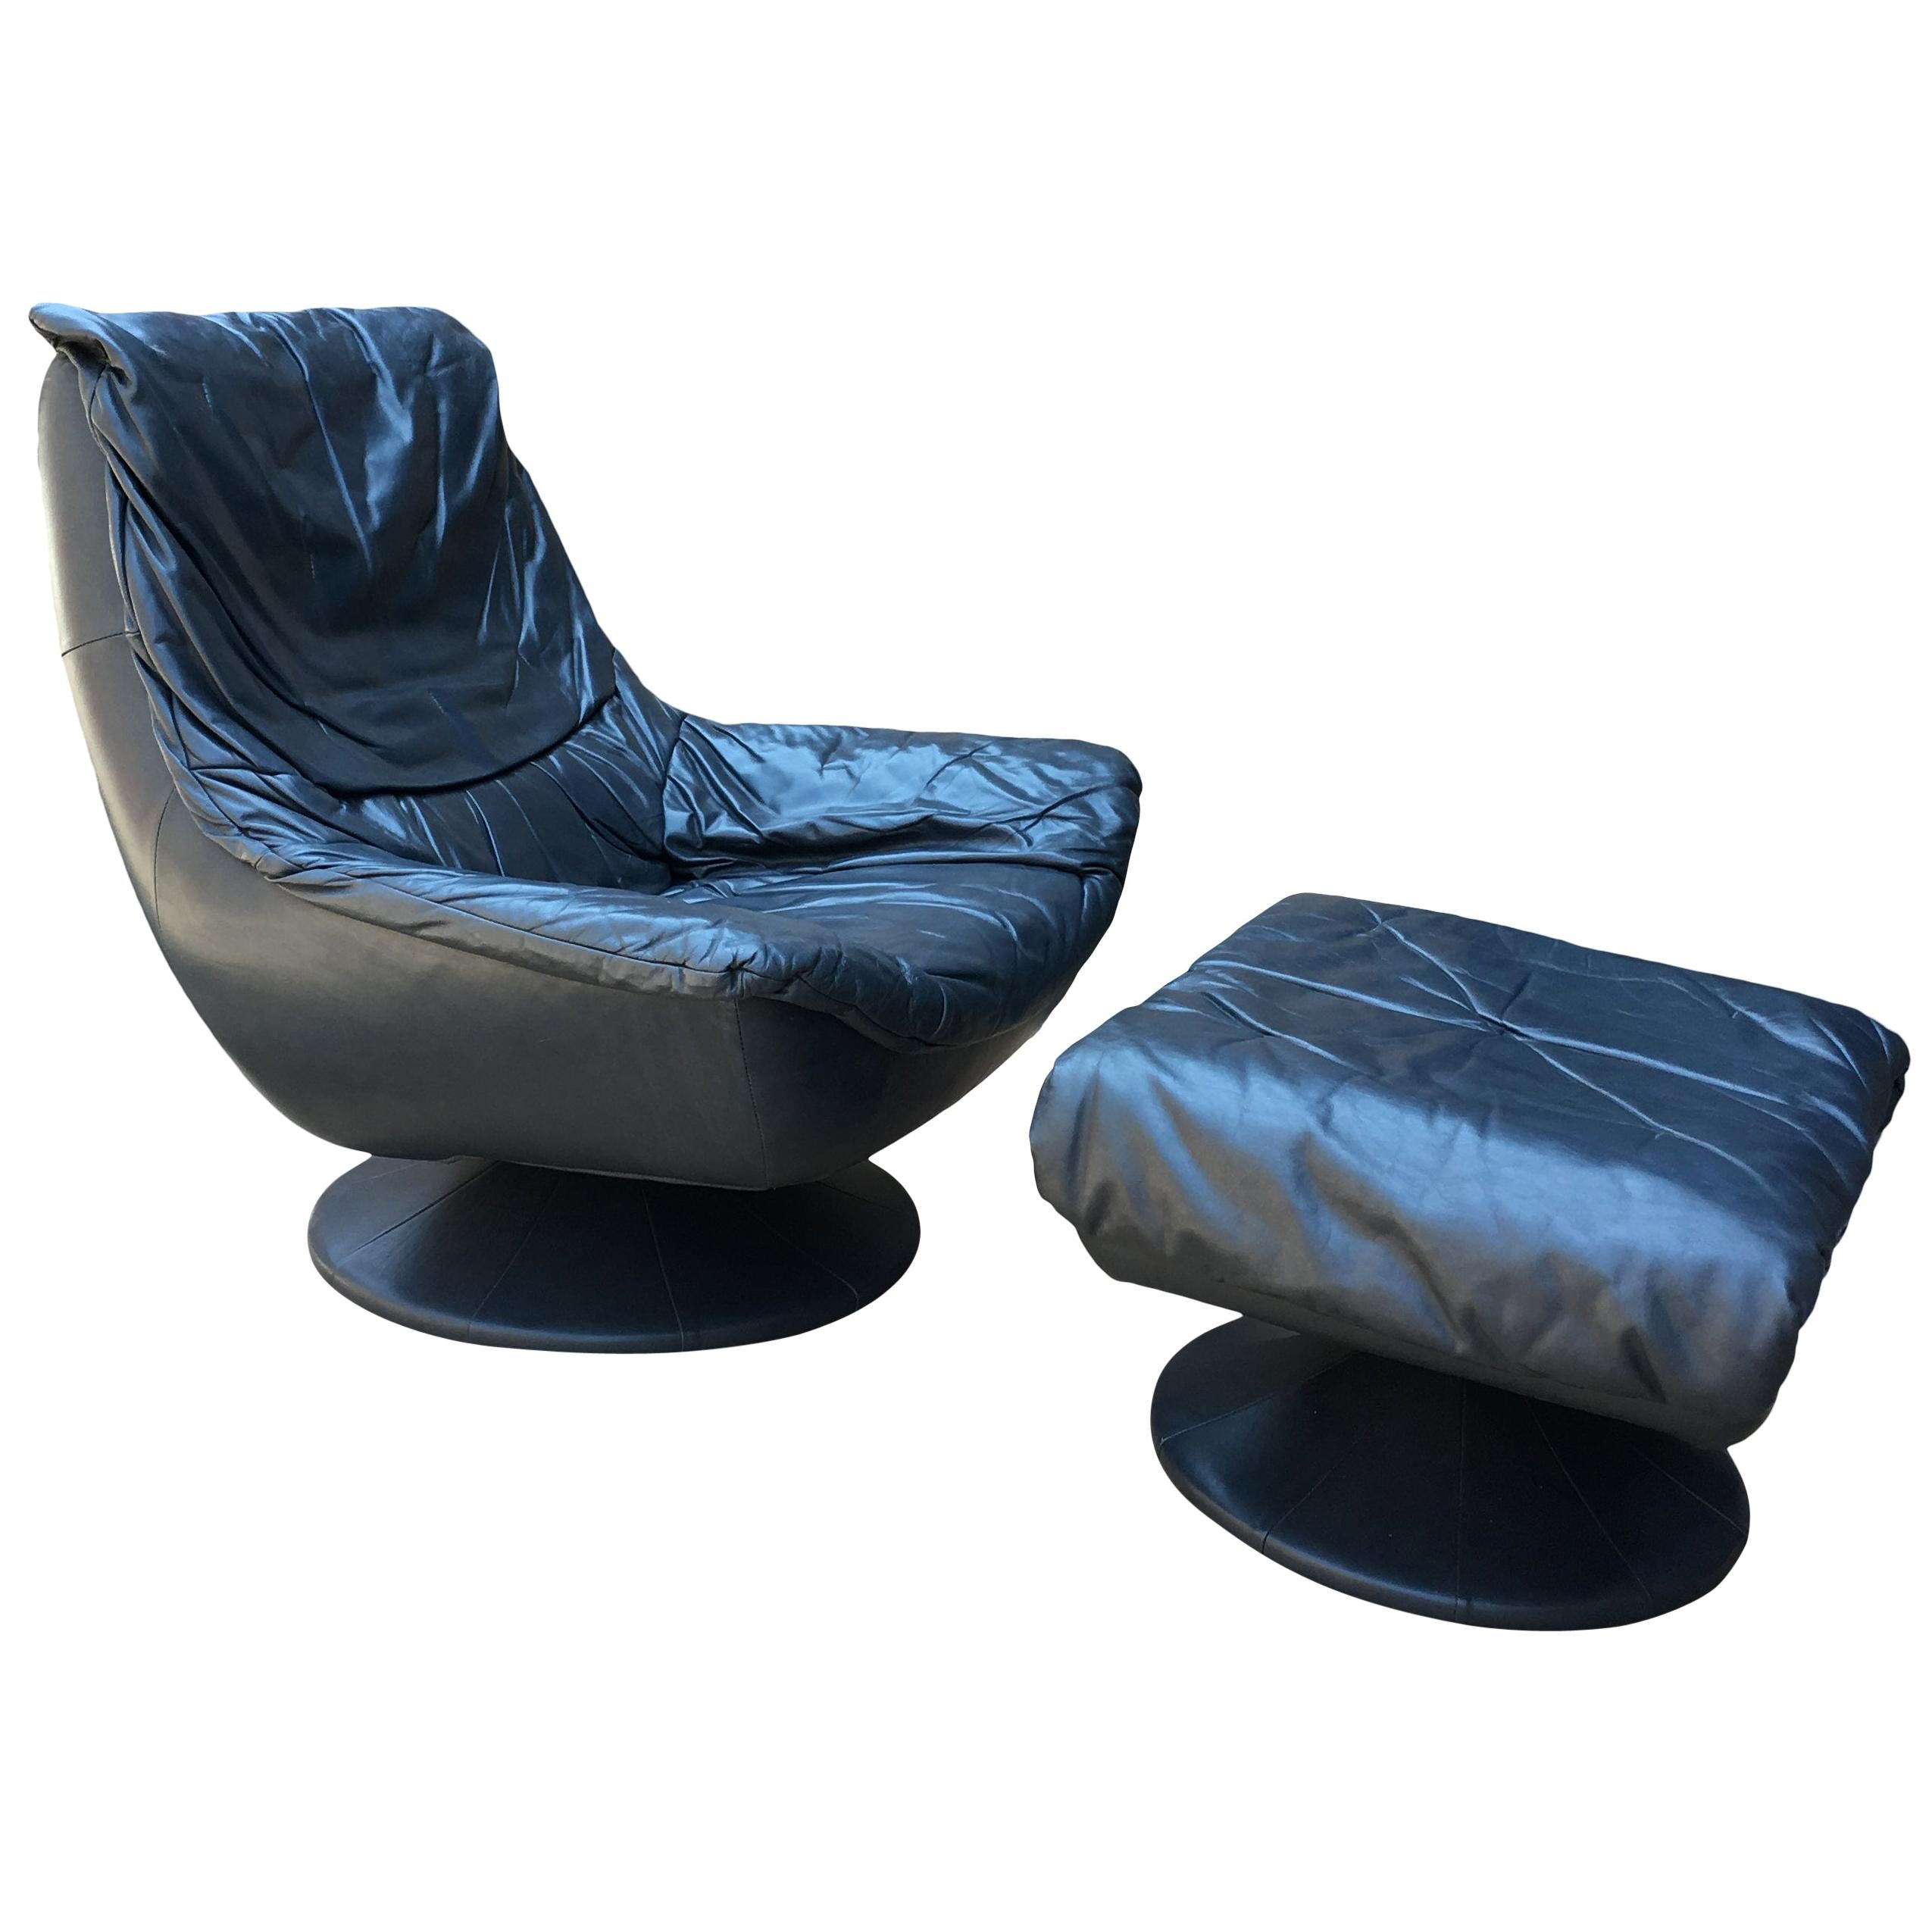 Groovy Swivel Chair And Ottomans 117 For Sale On 1Stdibs Machost Co Dining Chair Design Ideas Machostcouk